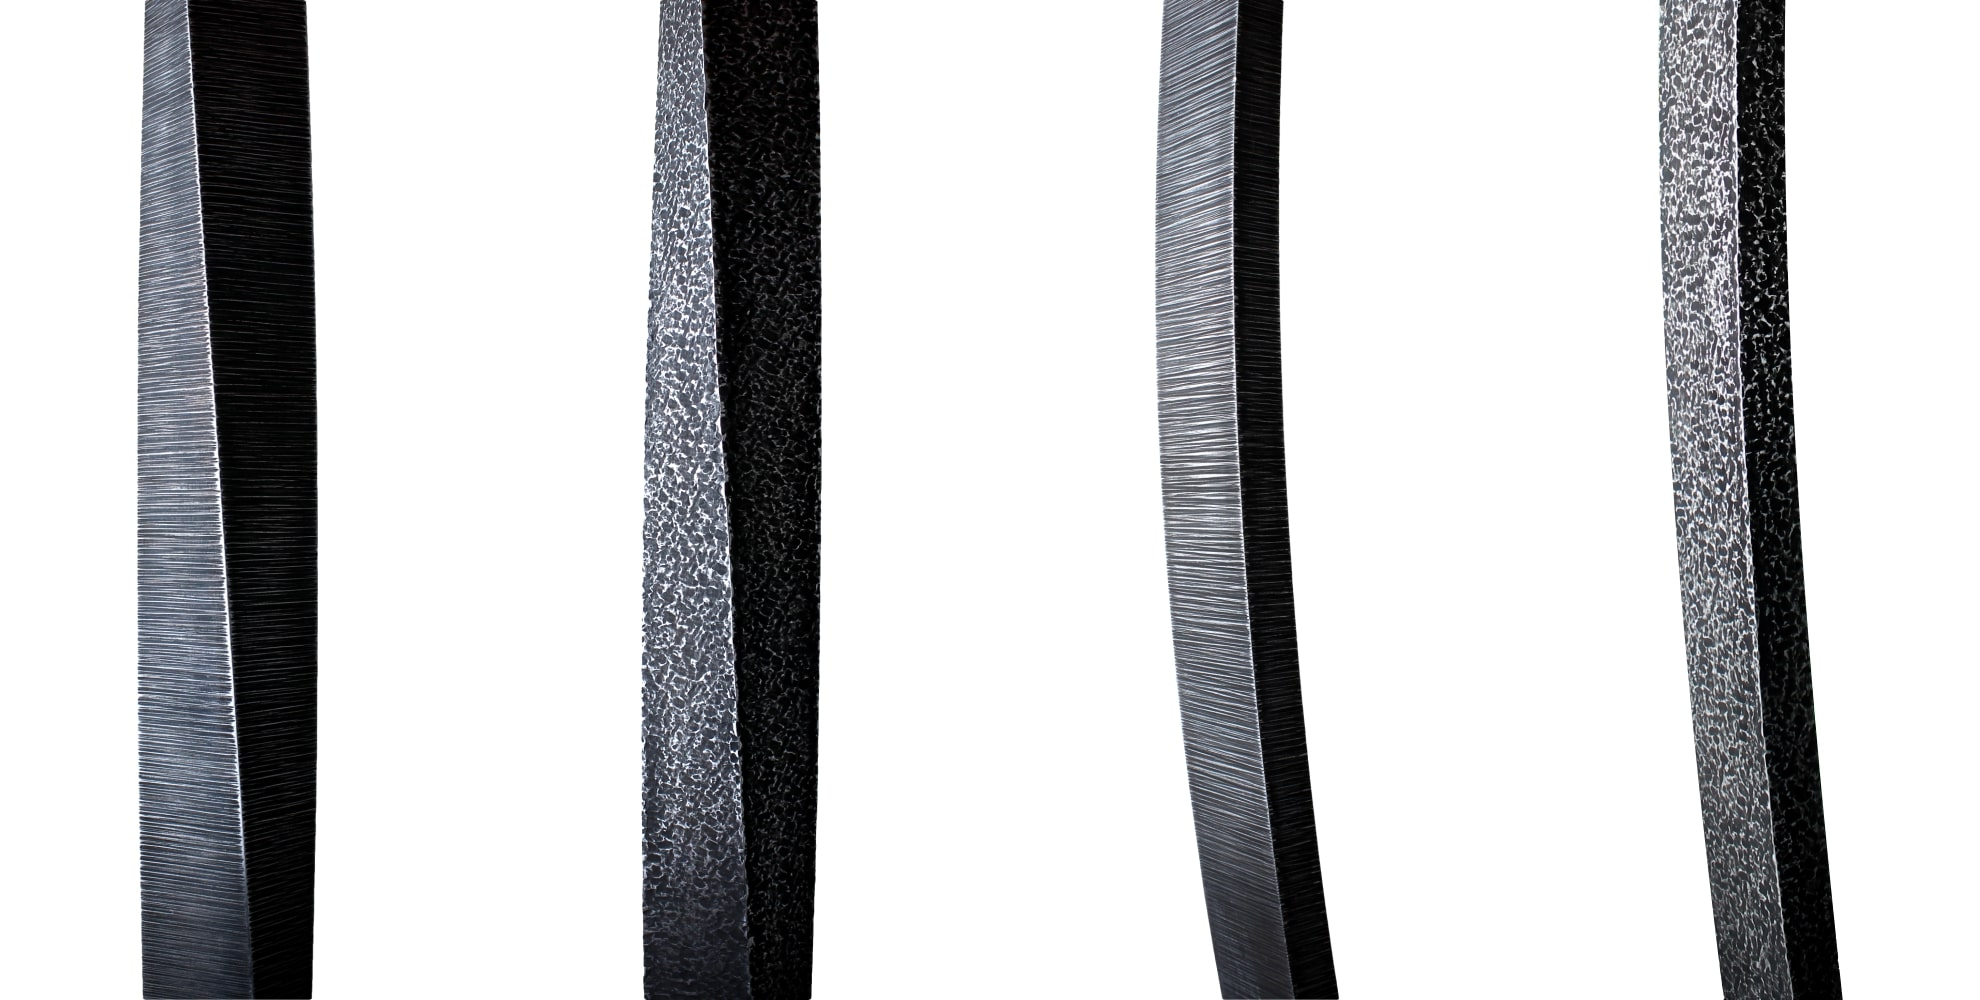 TWISTED OR BOWED HARDWARE (main)